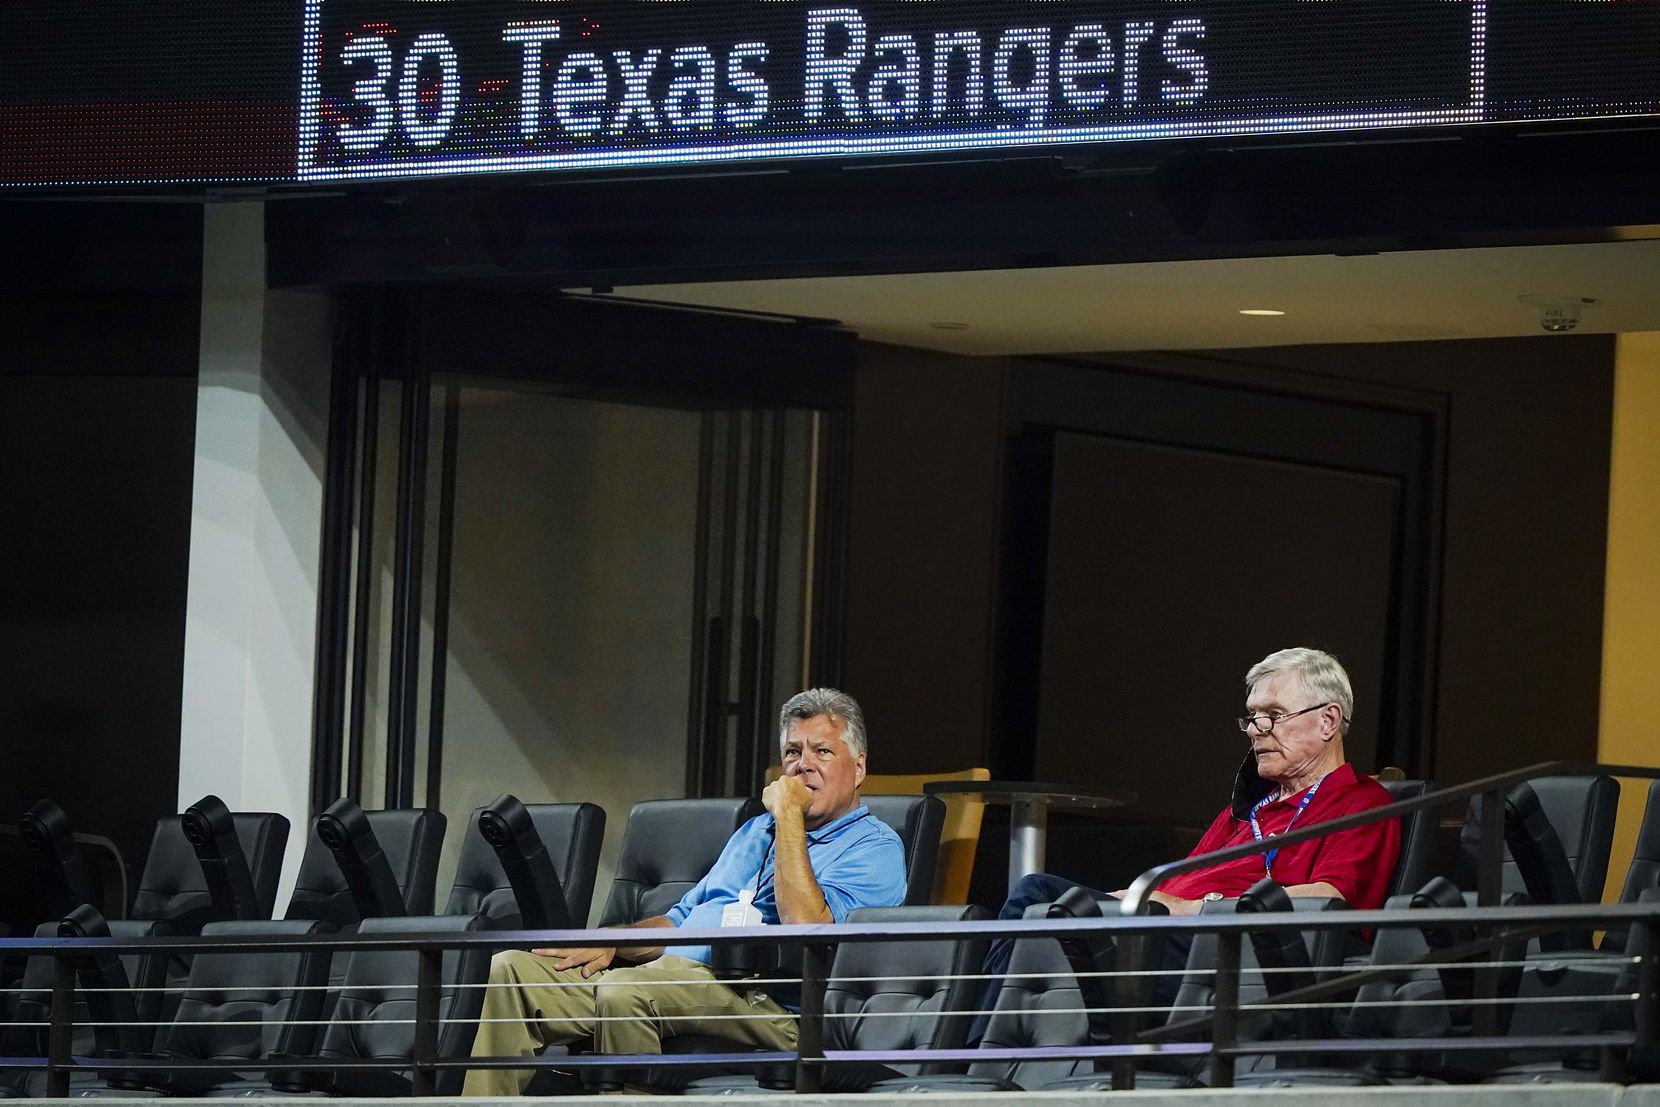 Texas Rangers co-chairman and managing partner Ray C. Davis (right) and chairman, ownership committee and chief operating officer Neil Leibman watch from the stands during the sixth inning of an exhibition game against the Colorado Rockies at Globe Life Field on Tuesday, July 21, 2020.